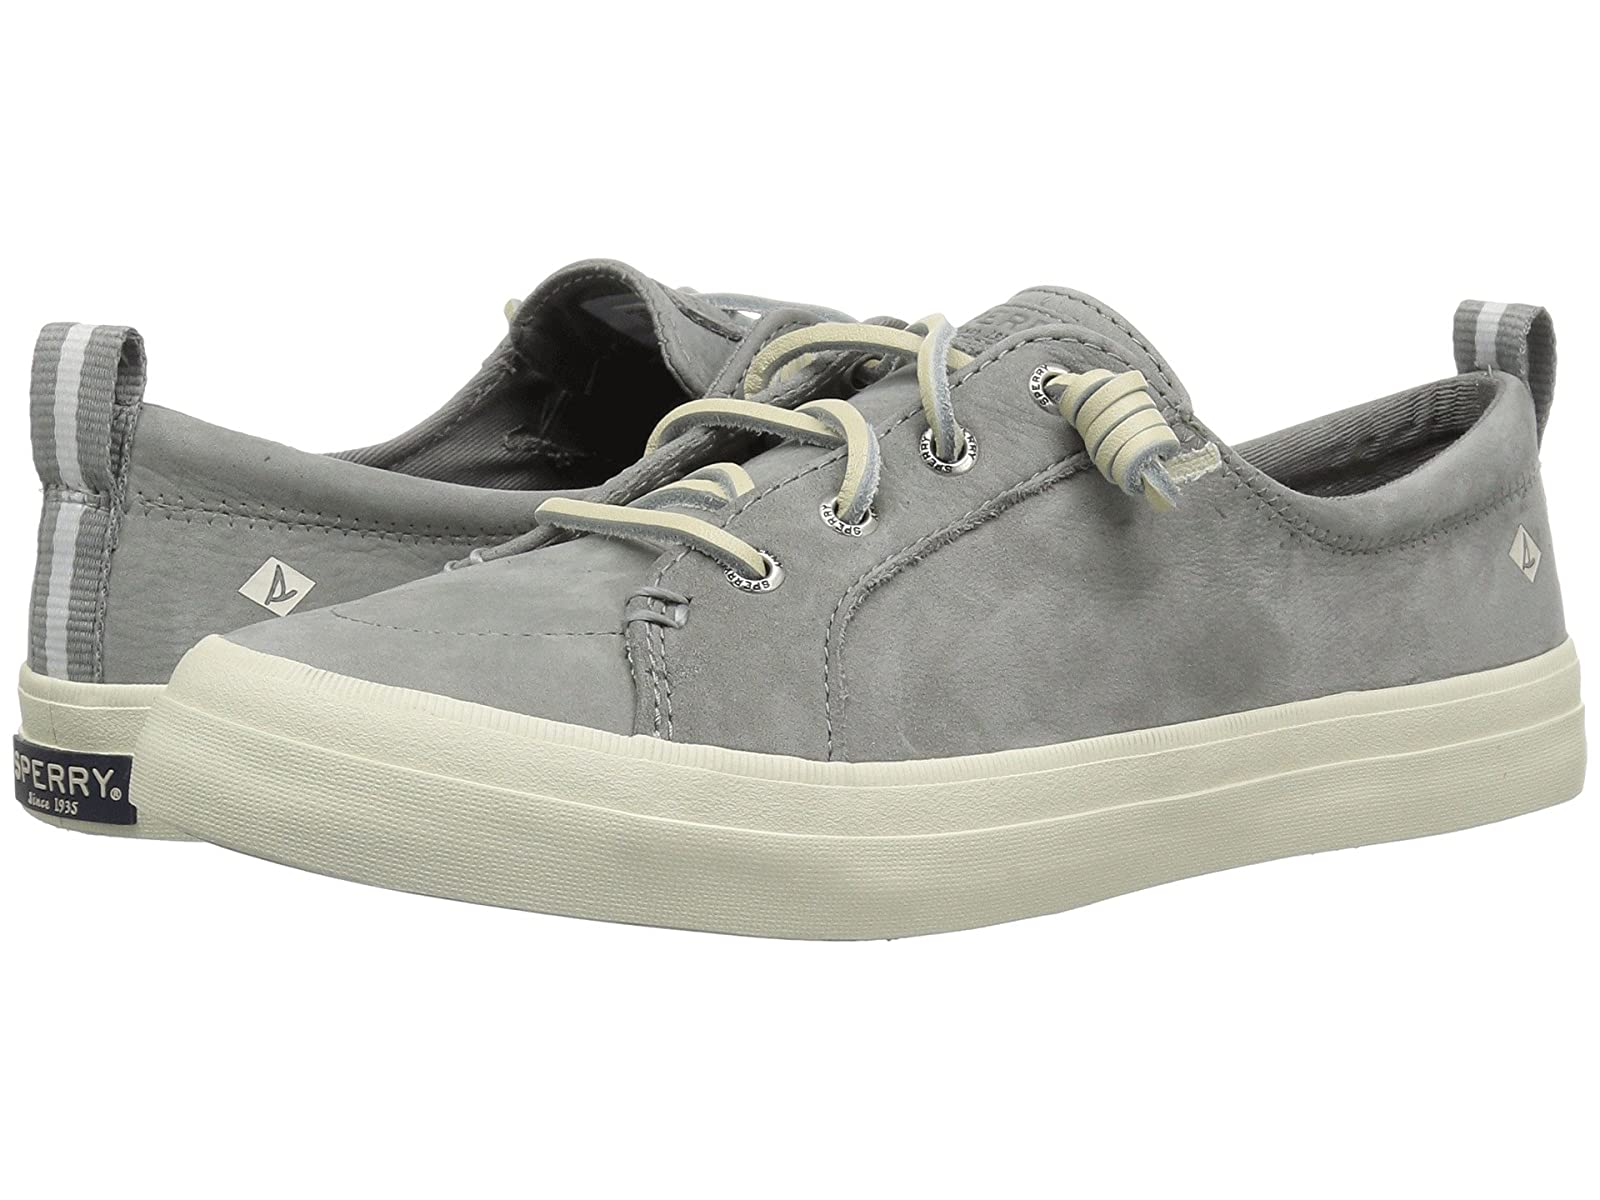 Sperry Crest Vibe Washable LeatherAtmospheric grades have affordable shoes